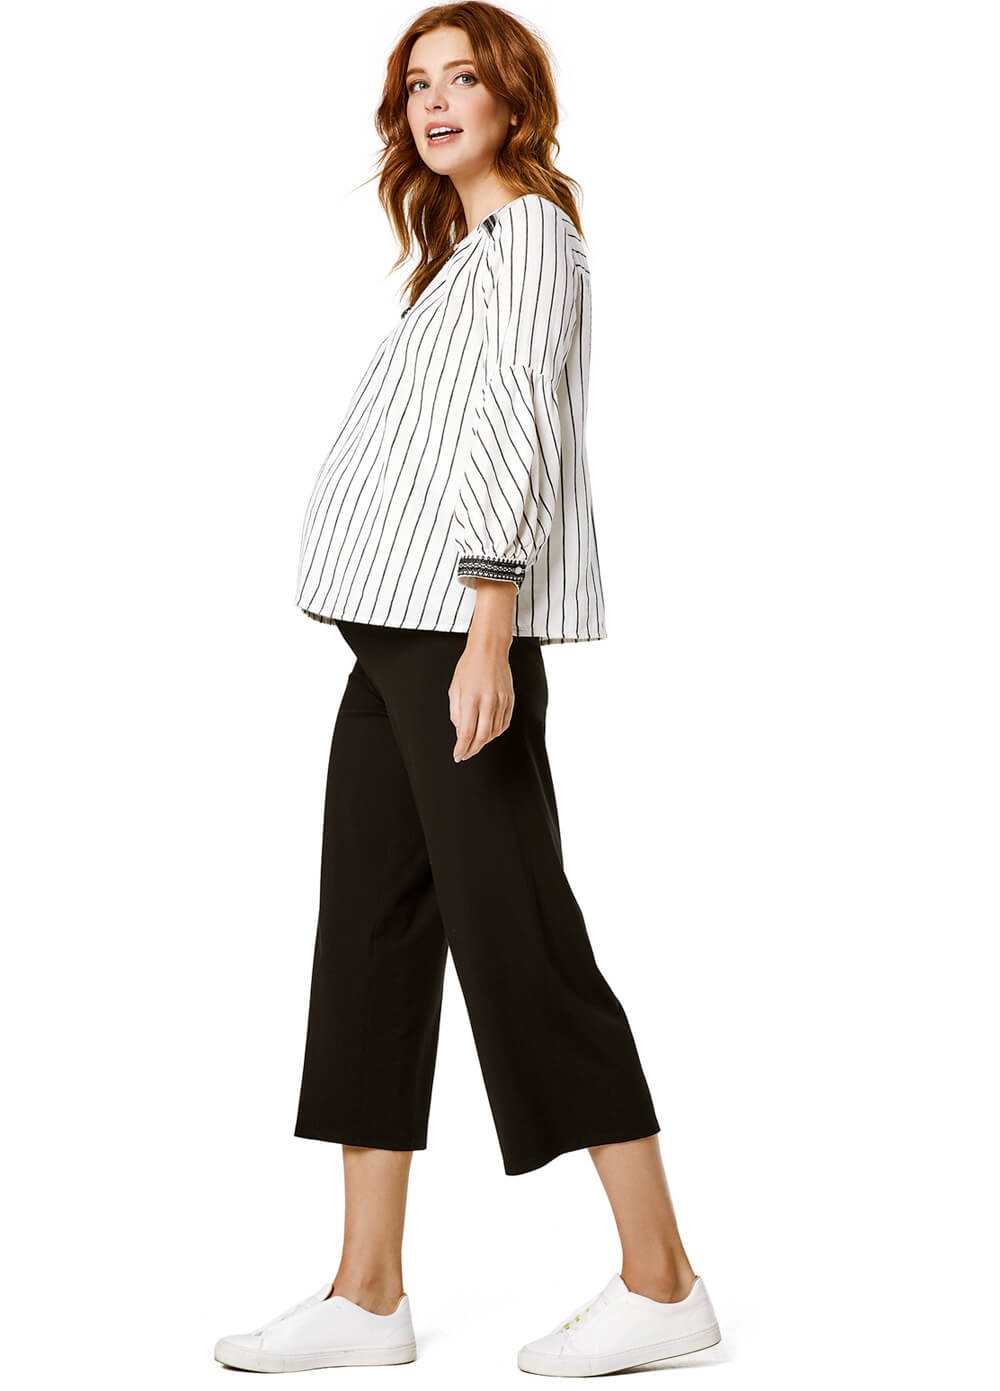 Queen mum Black Jersey Maternity Culottes | Queen Bee